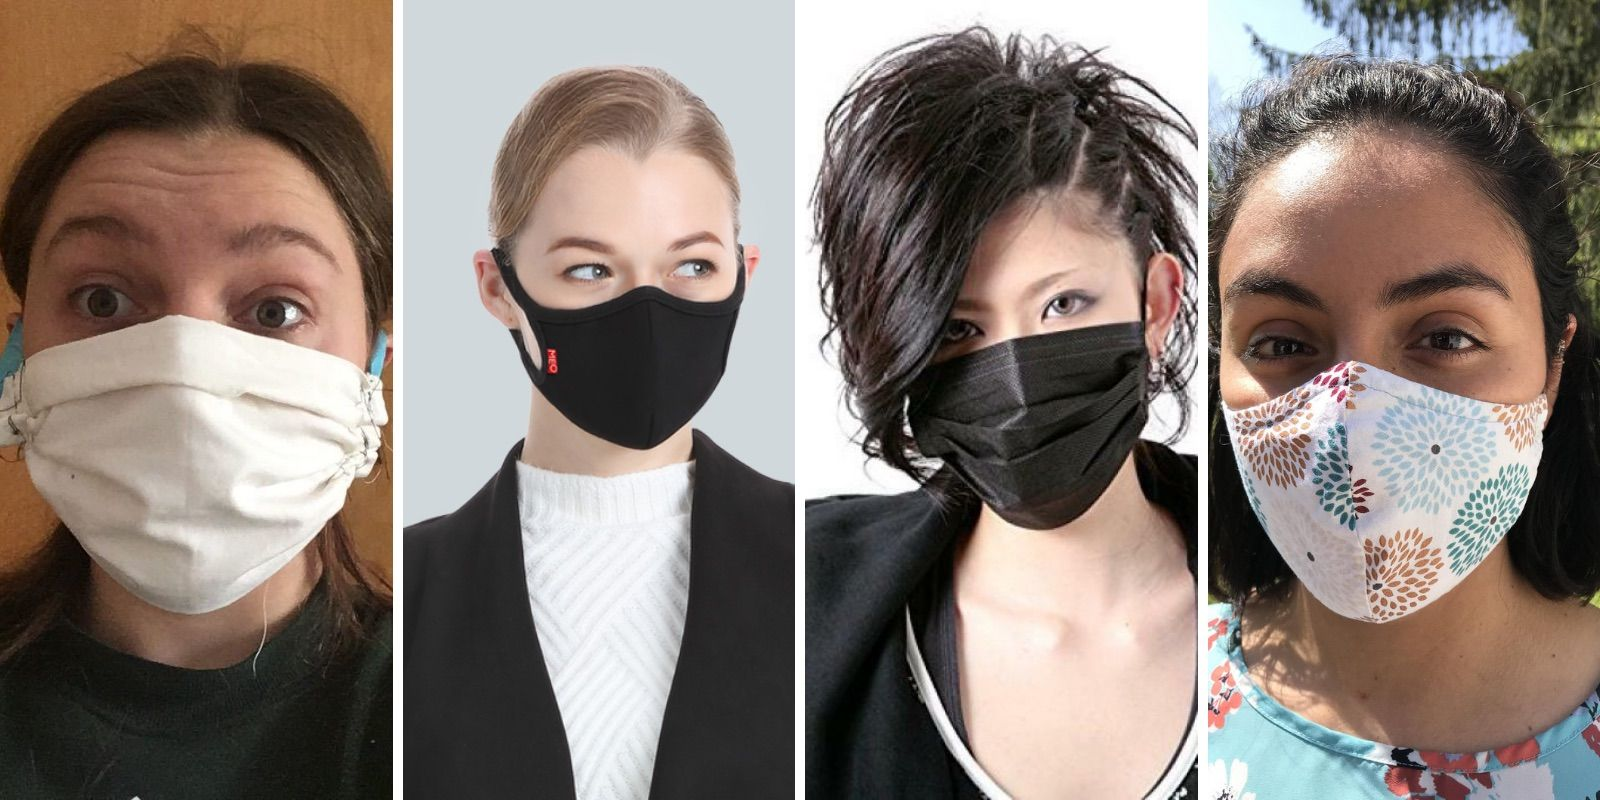 Making face masks mandatory is not backed by science or law